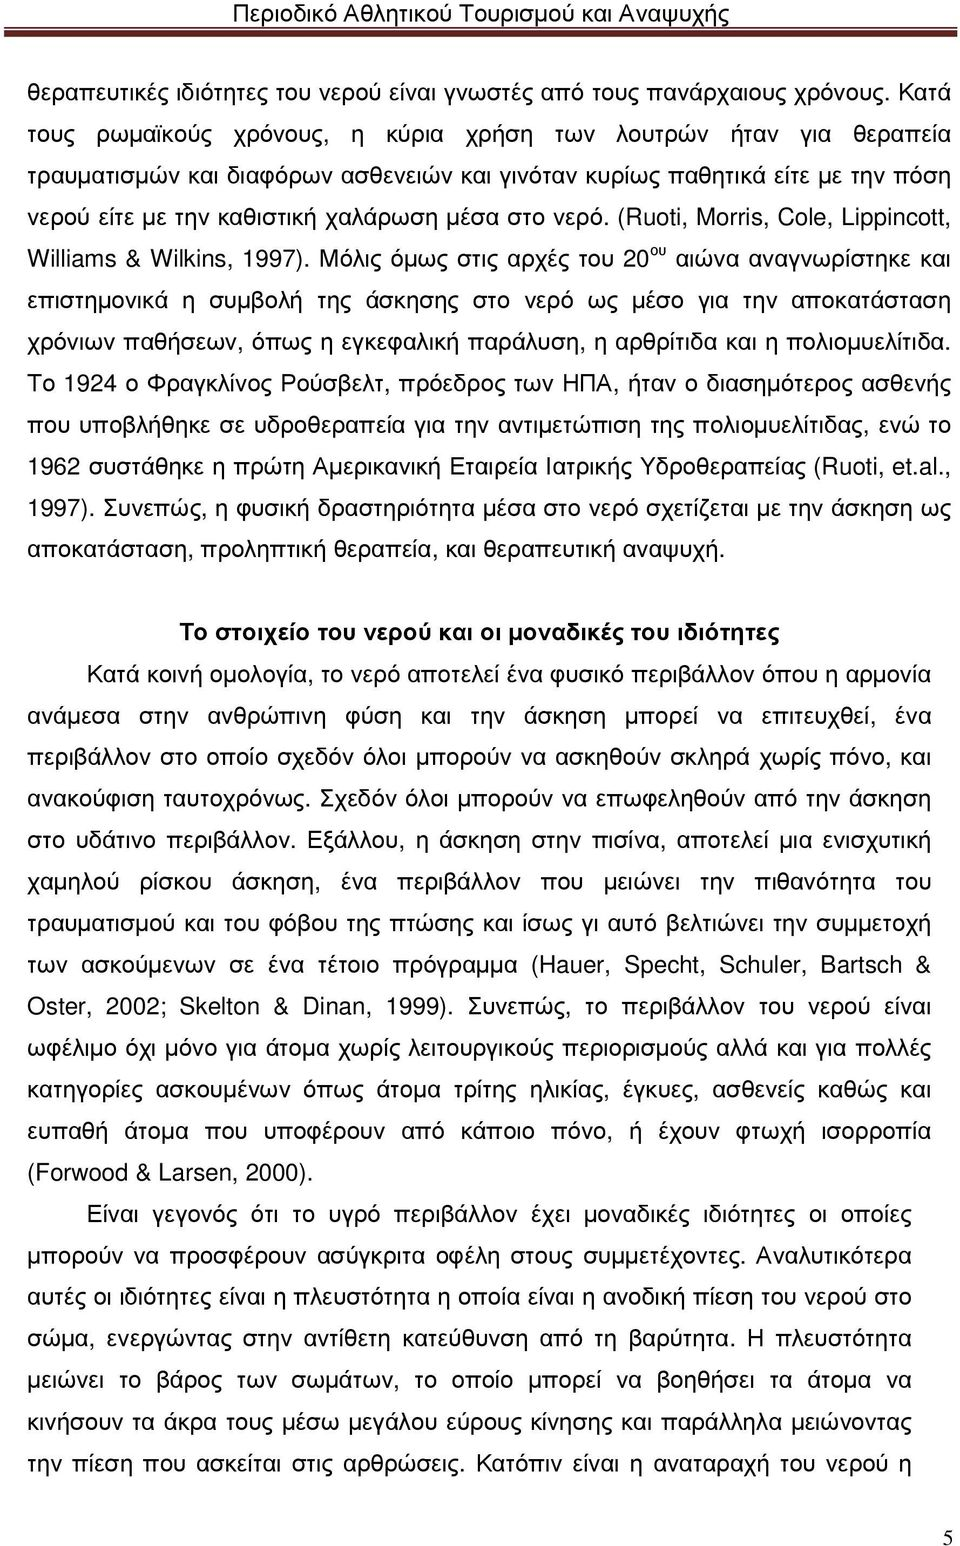 νερό. (Ruoti, Morris, Cole, Lippincott, Williams & Wilkins, 1997).